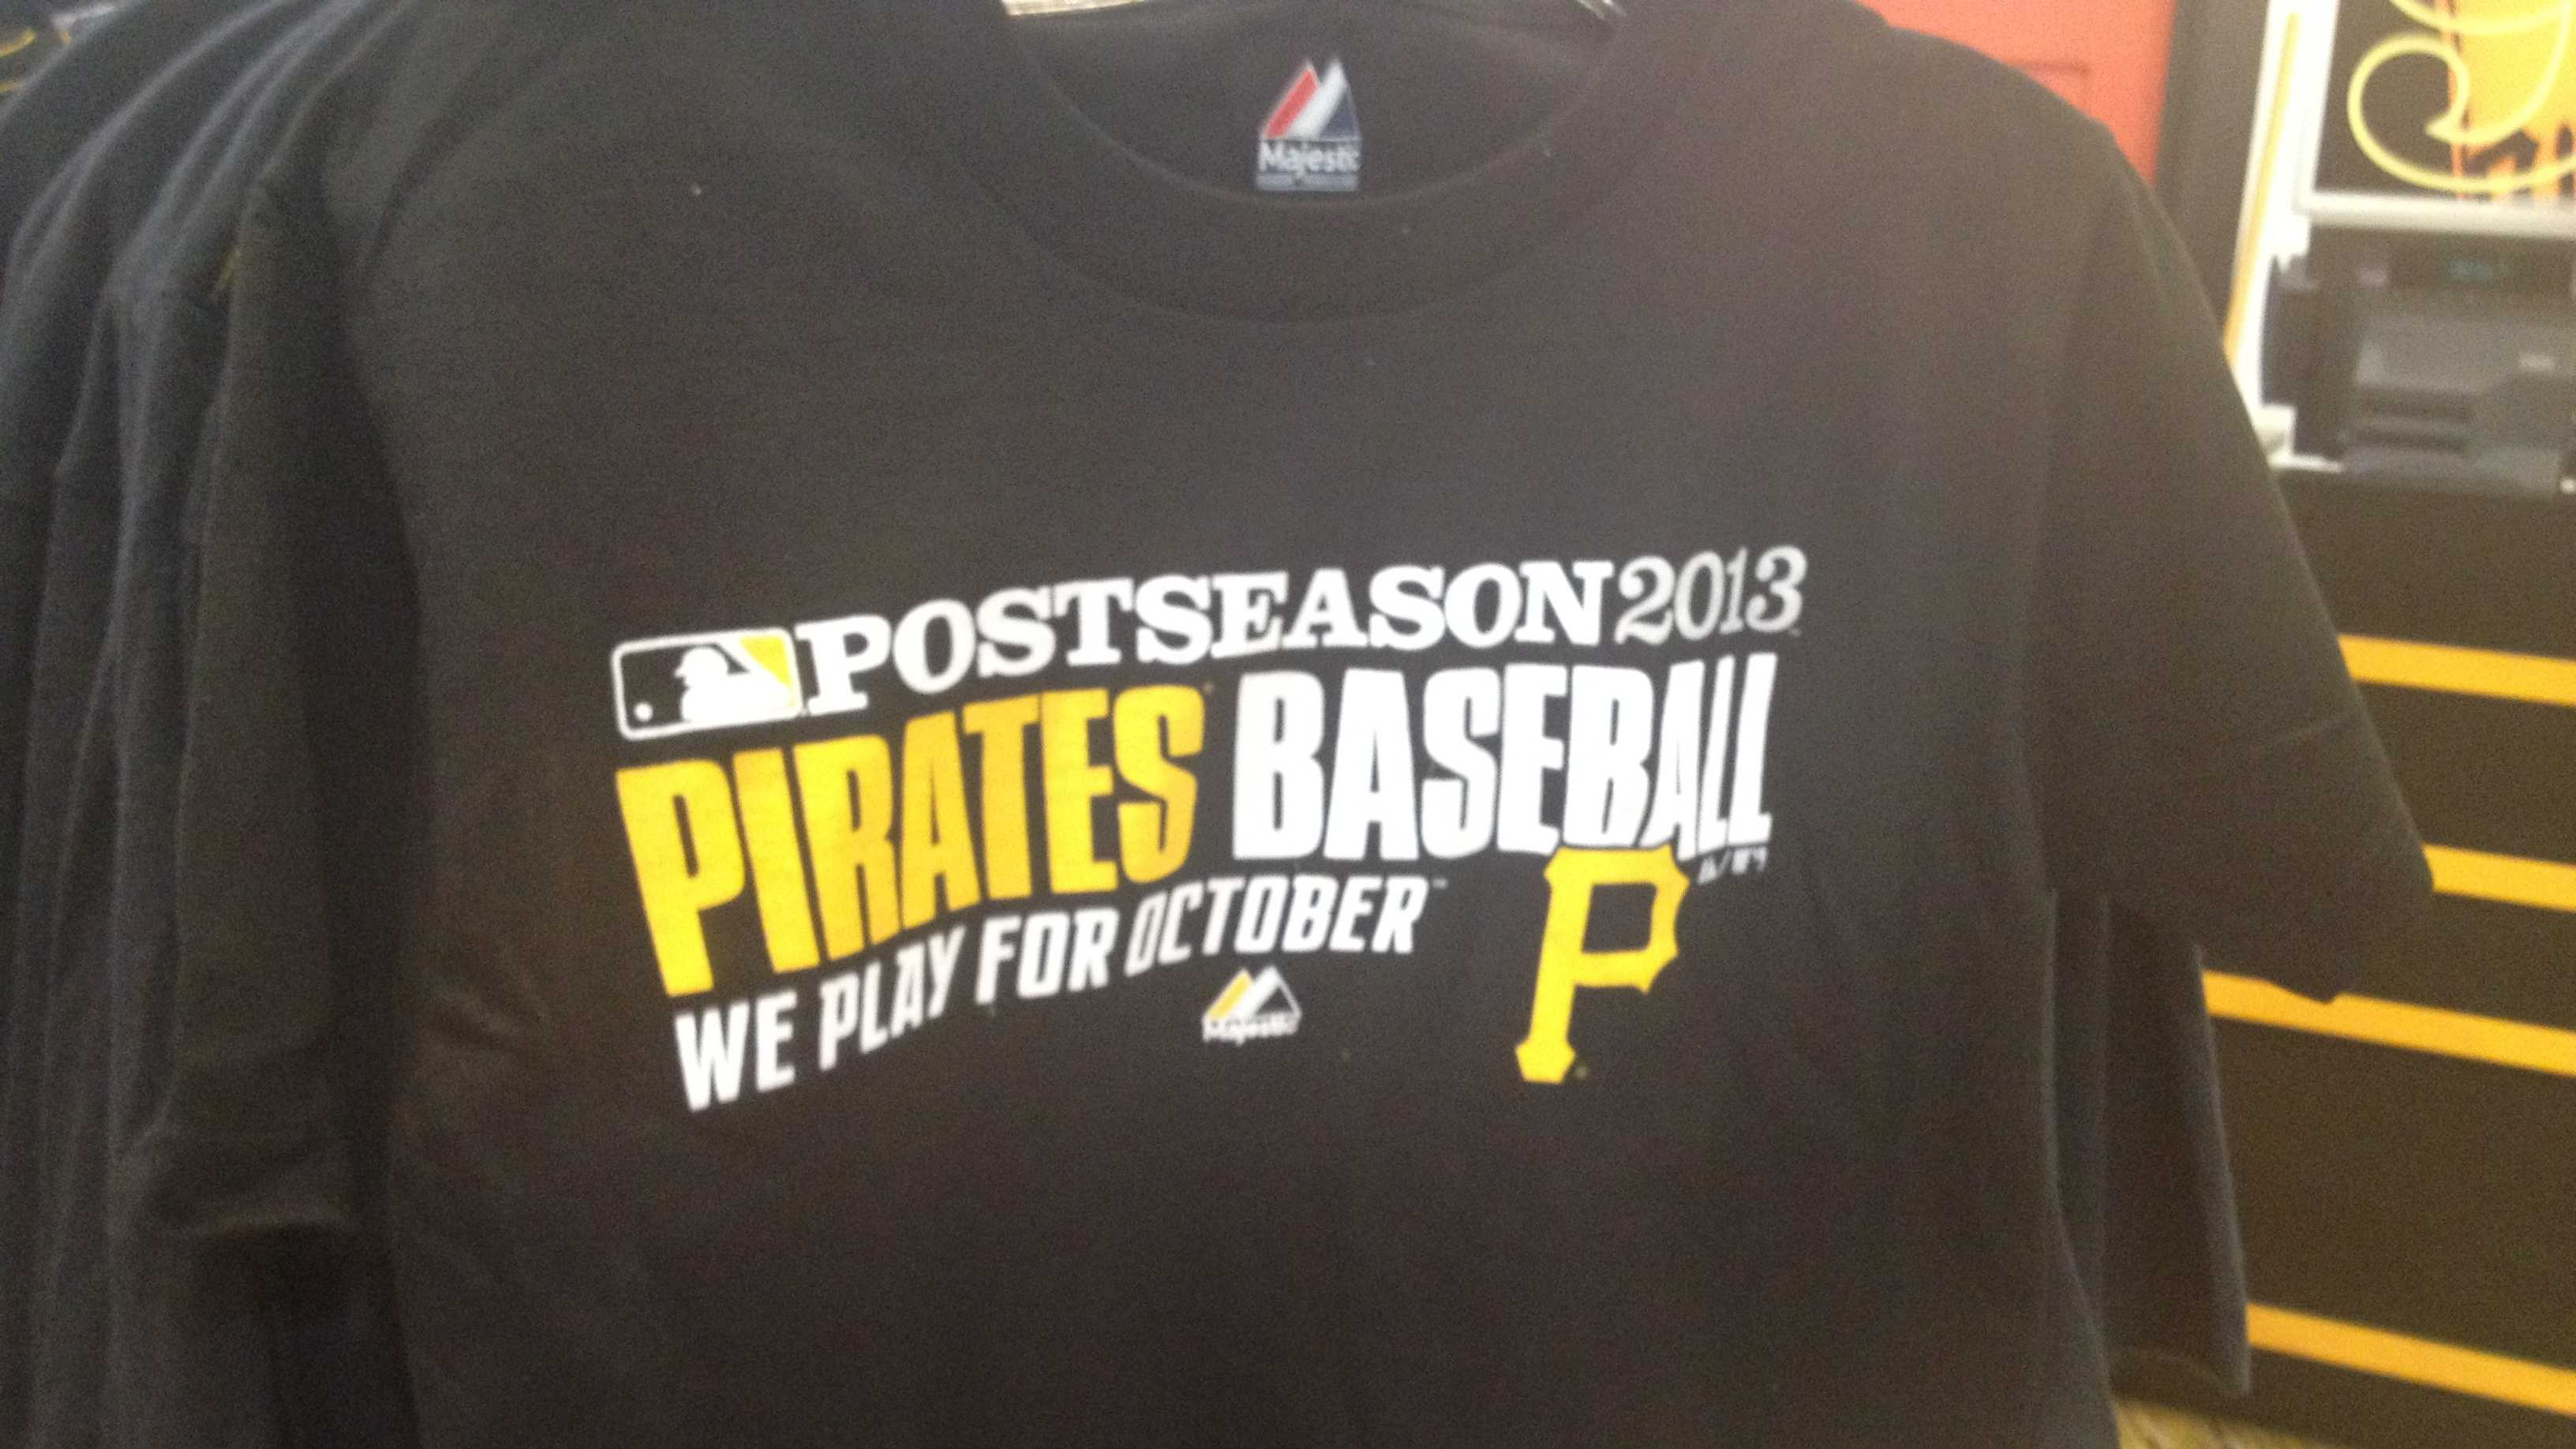 """We play for October:"" Four words that Pittsburgh baseball fans have been waiting 21 years to say are now printed on the official postseason shirts."